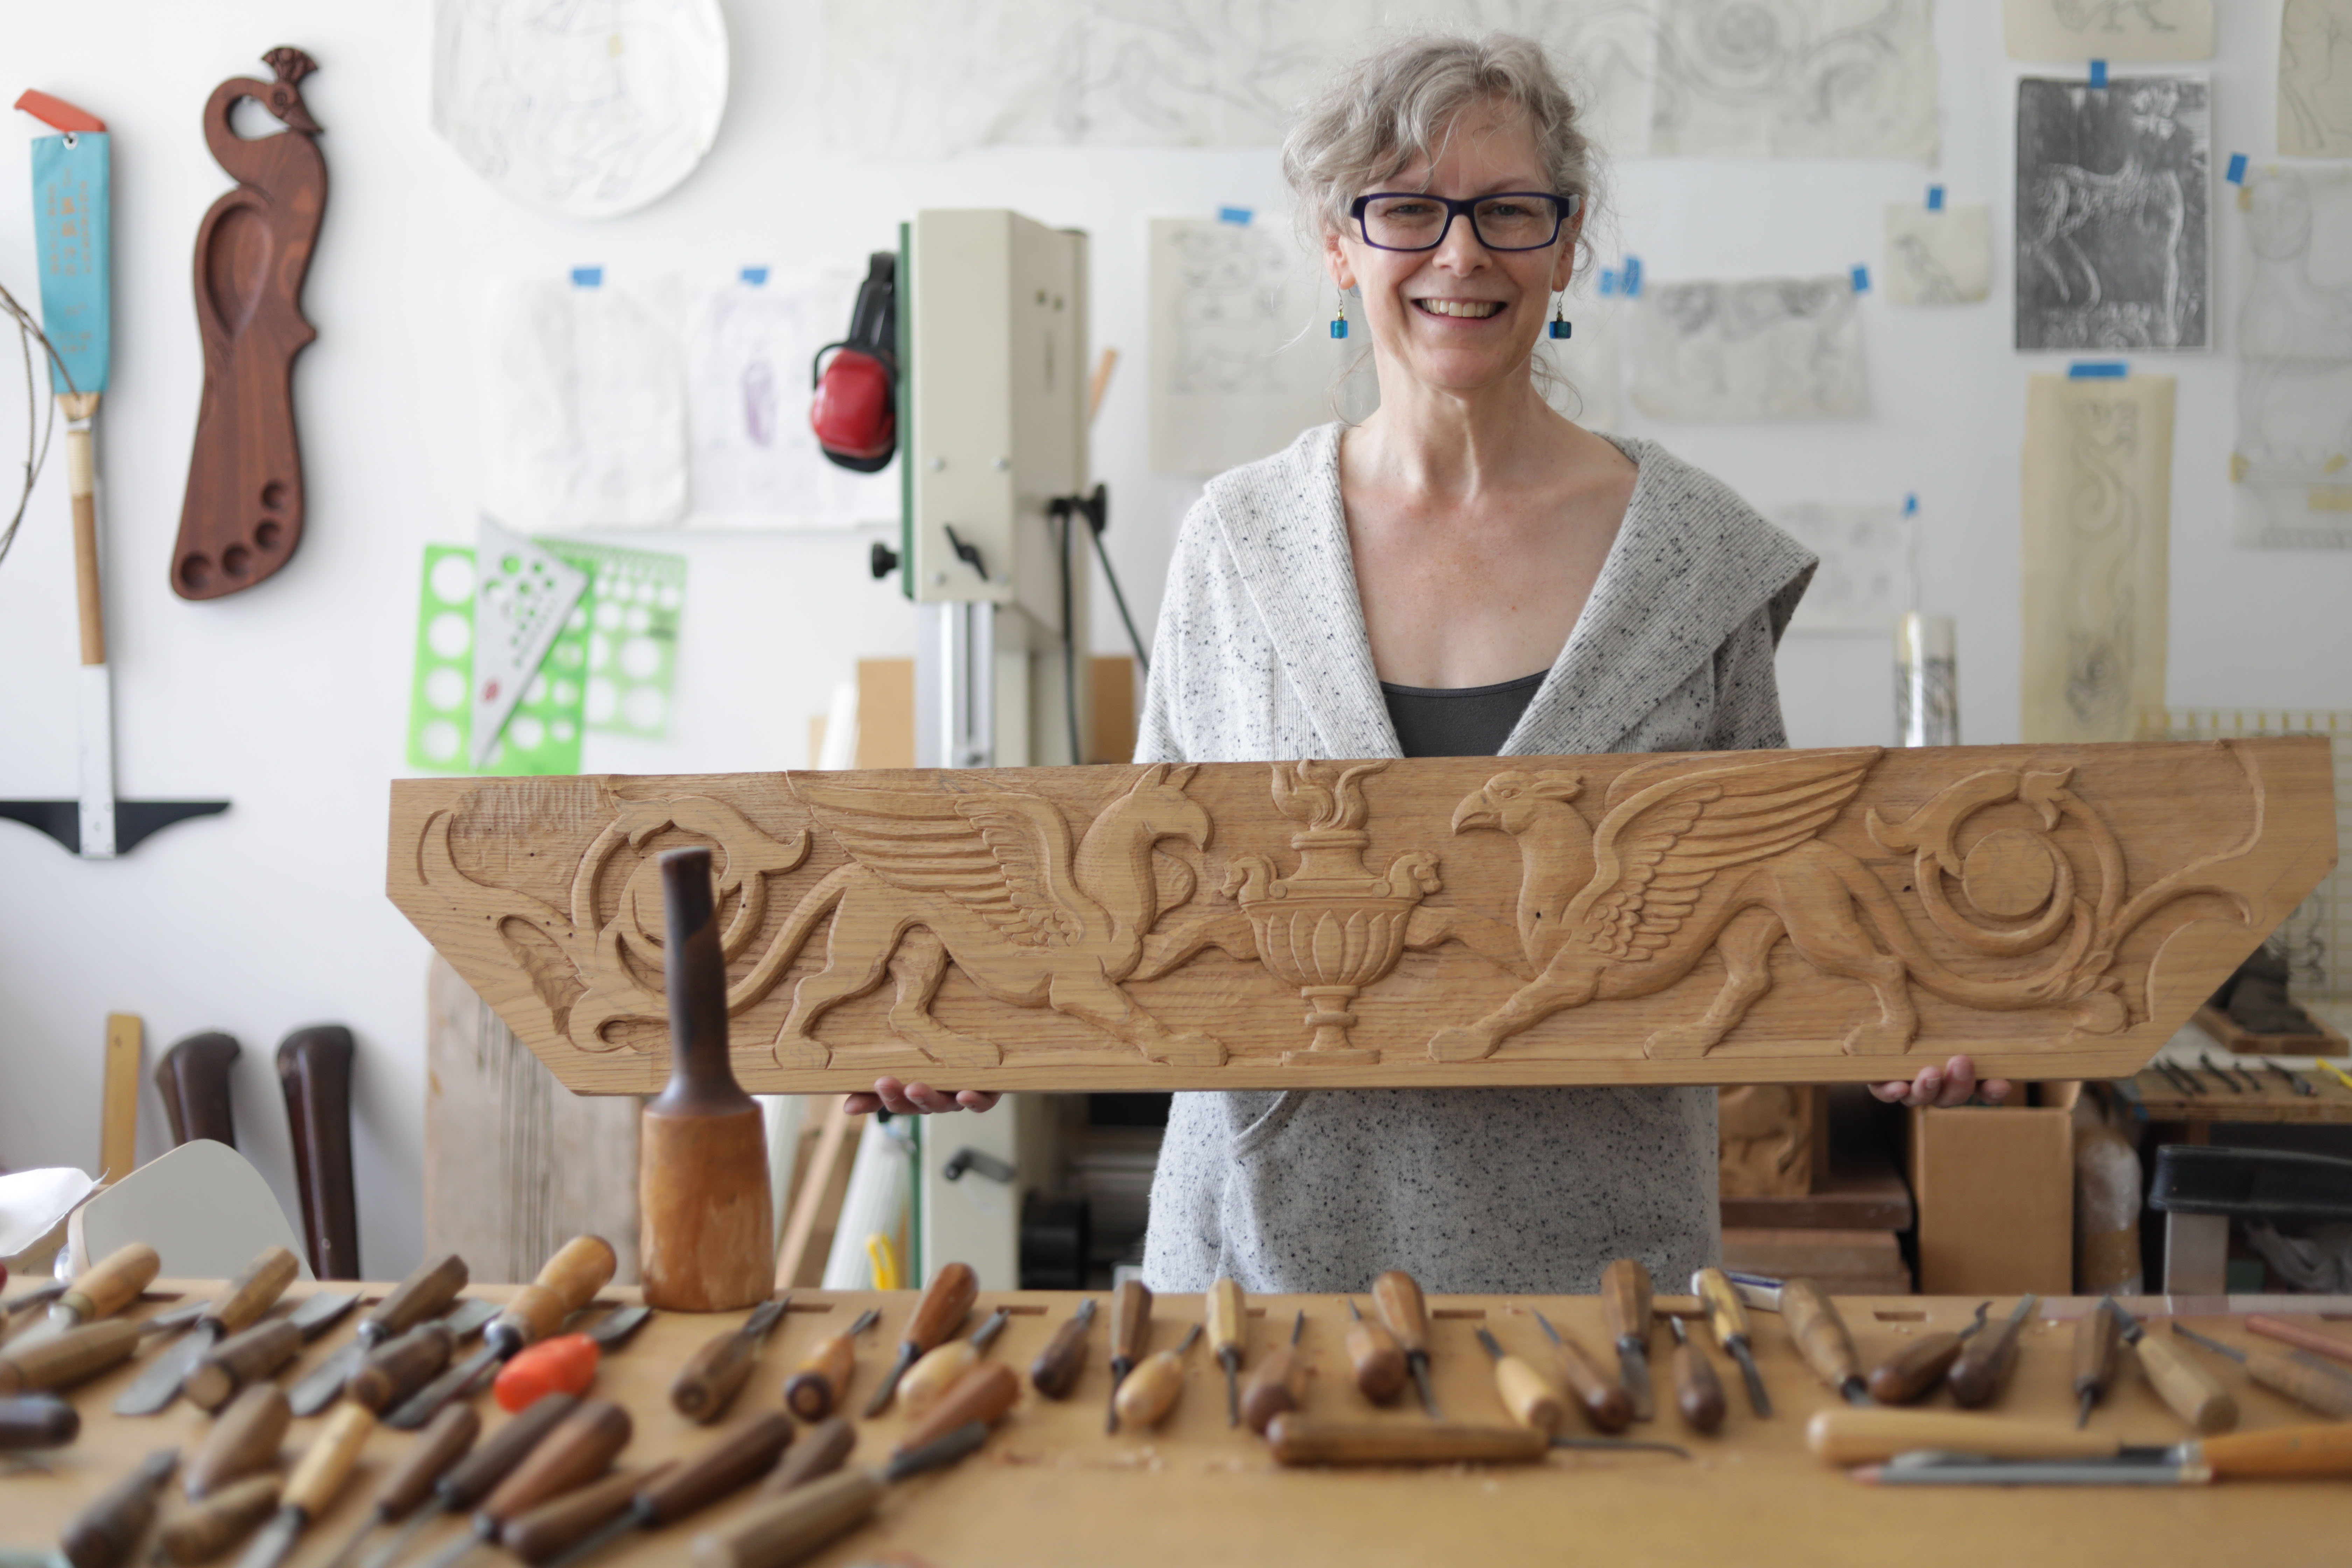 NYCxDesign 2019 The Precious Craft in Focus Festival - Wood Carving - nycxdesign NYCxDesign 2019: The Precious Craft in Focus Festival NYCxDesign 2019 The Precious Craft in Focus Festival Wood Carving